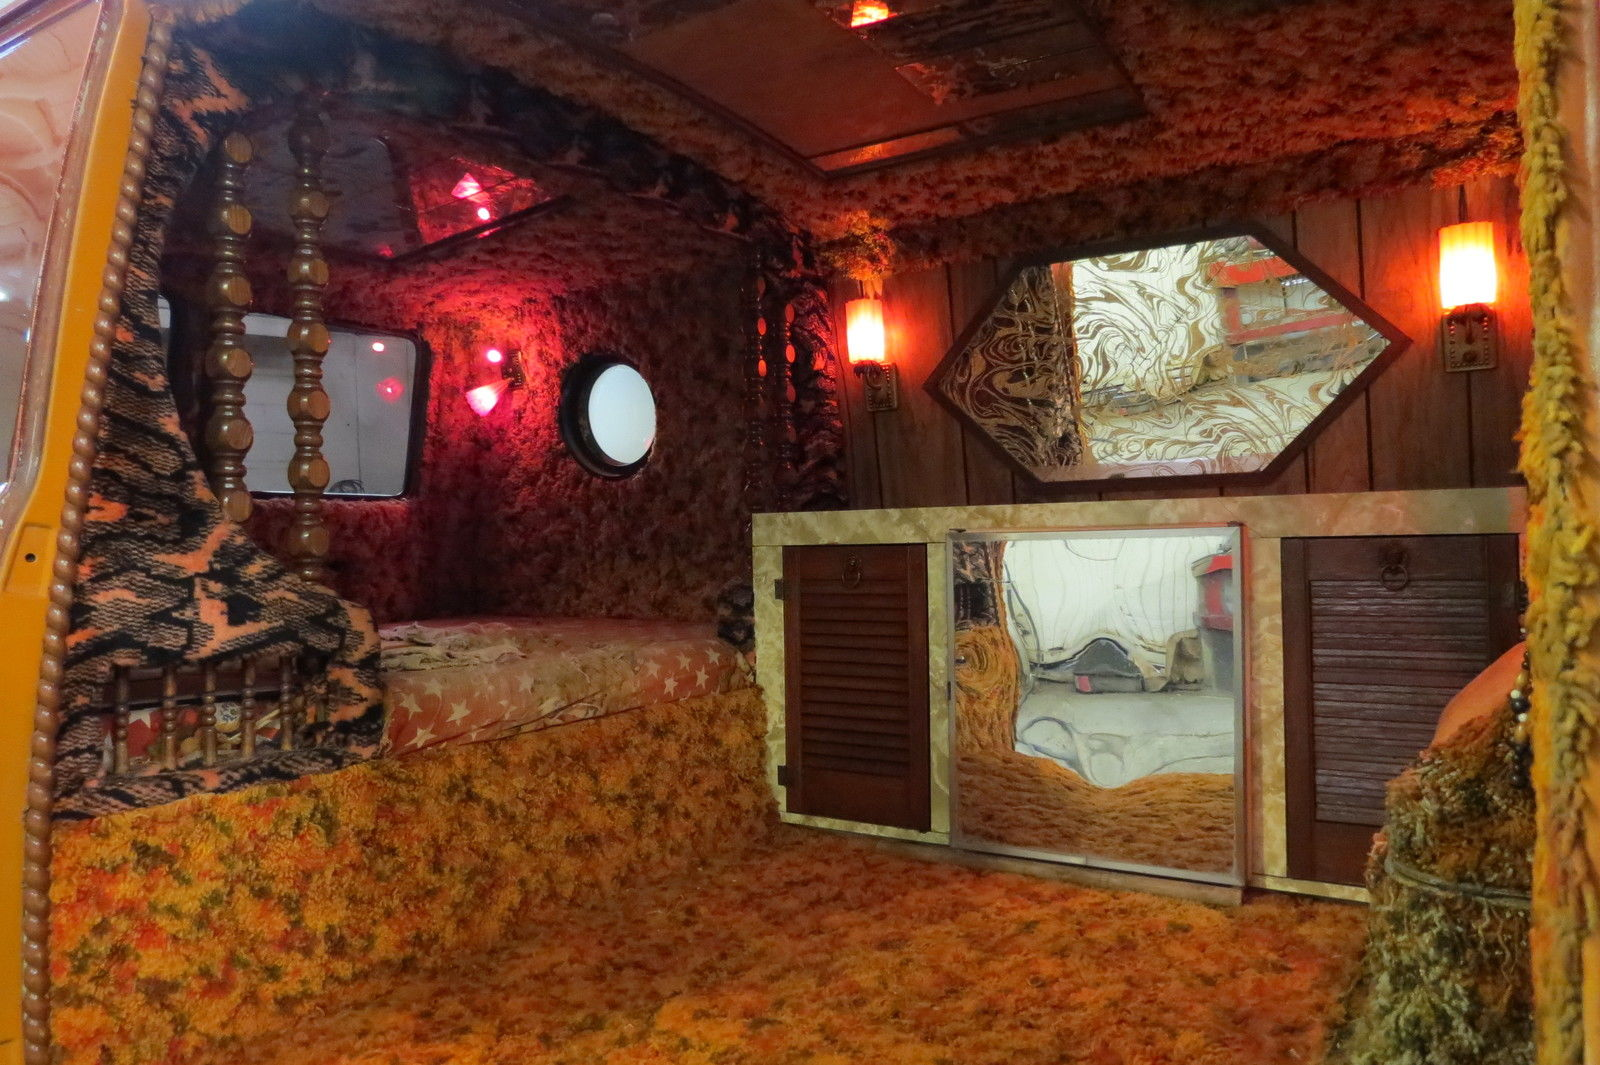 This Is What One Would Expect To See Inside Of A True 70s Custom Van Its Equal Parts Brothel And Your Parents Basement Circa 1978